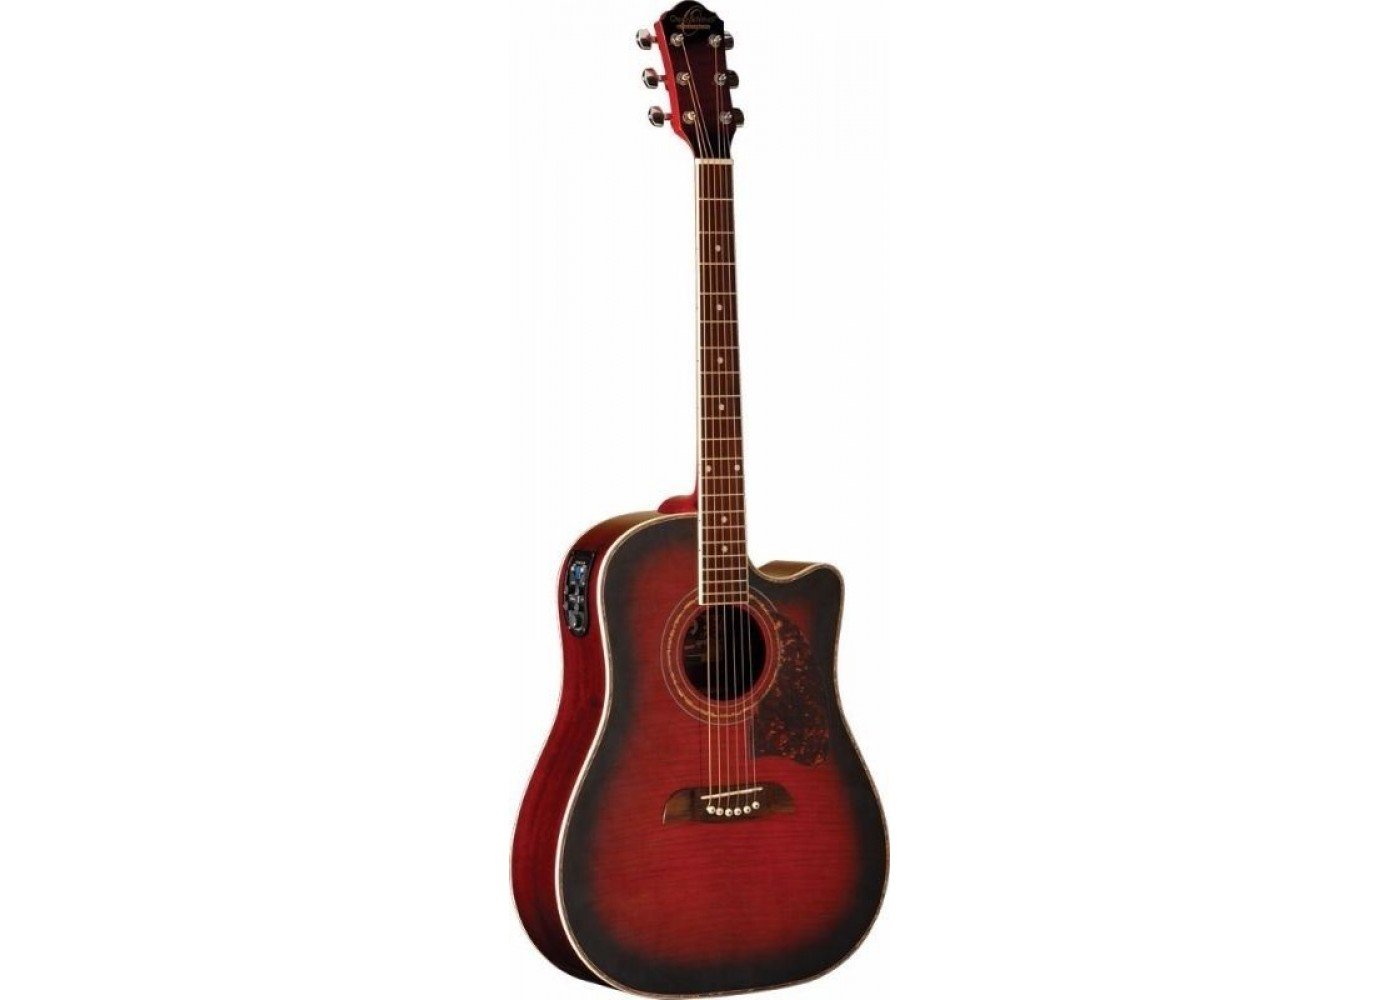 OSCAR SCHMIDT OG2CEFBC DREADNOUGHT ACOUSTIC-ELECTRIC GUITAR FLAME BLACK CHERRY